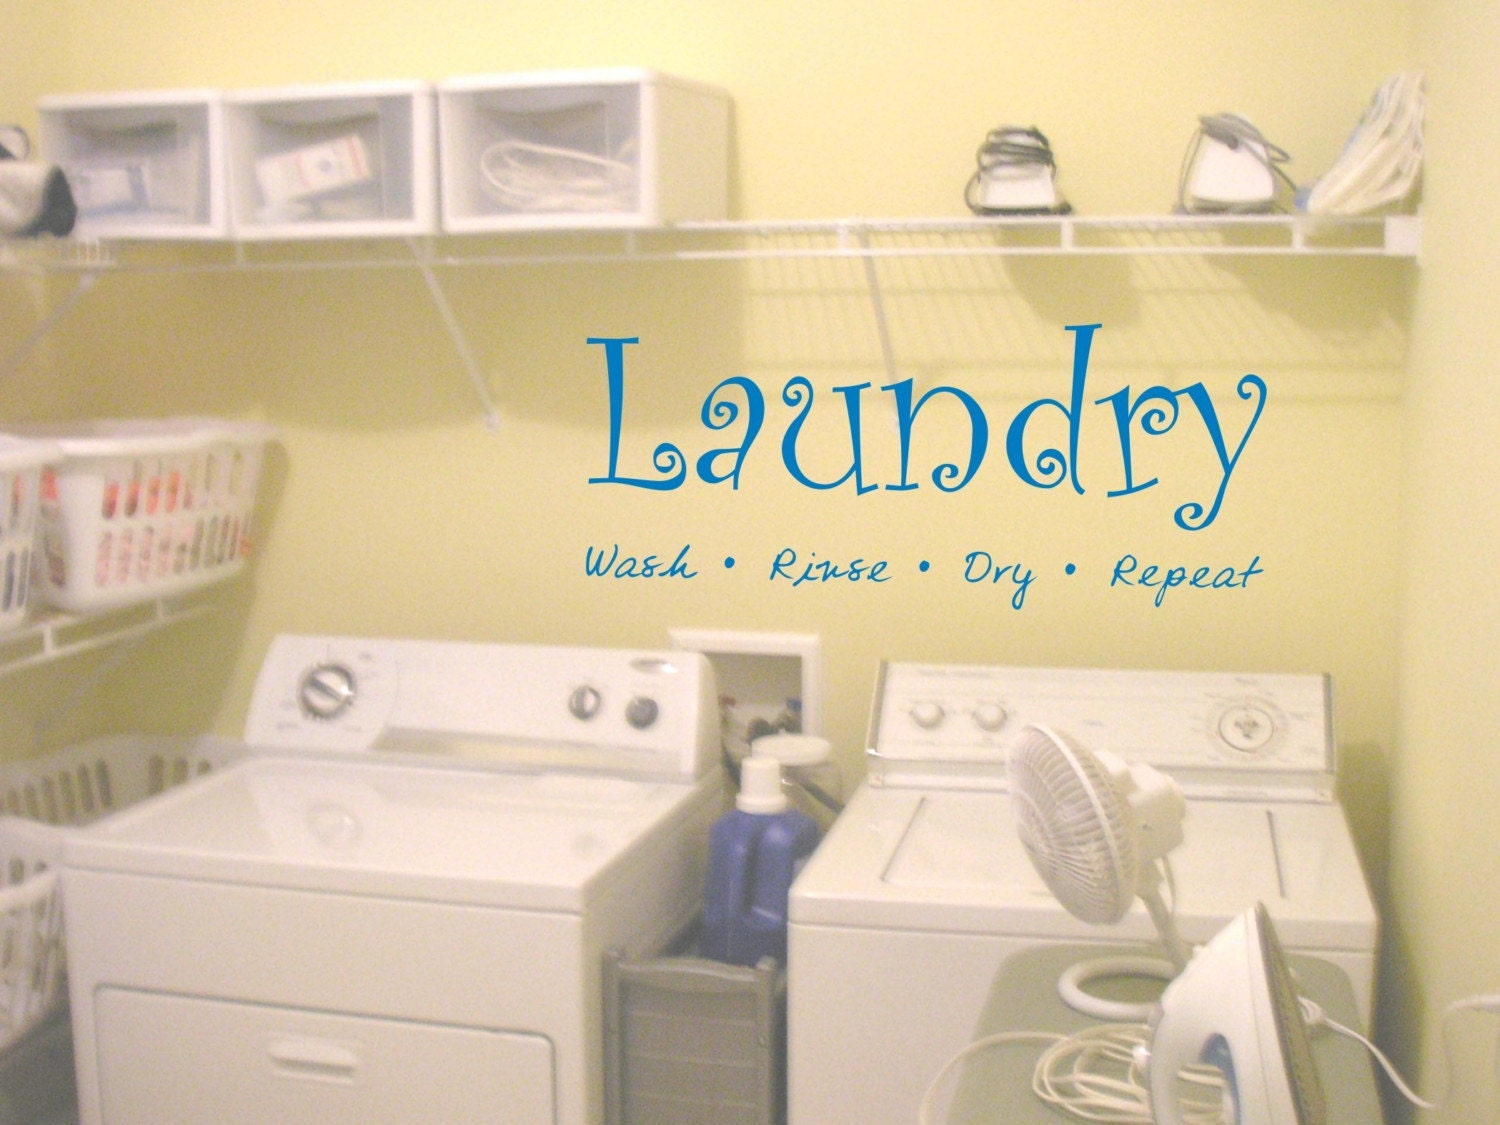 Laundry Room Pictures For Walls title=